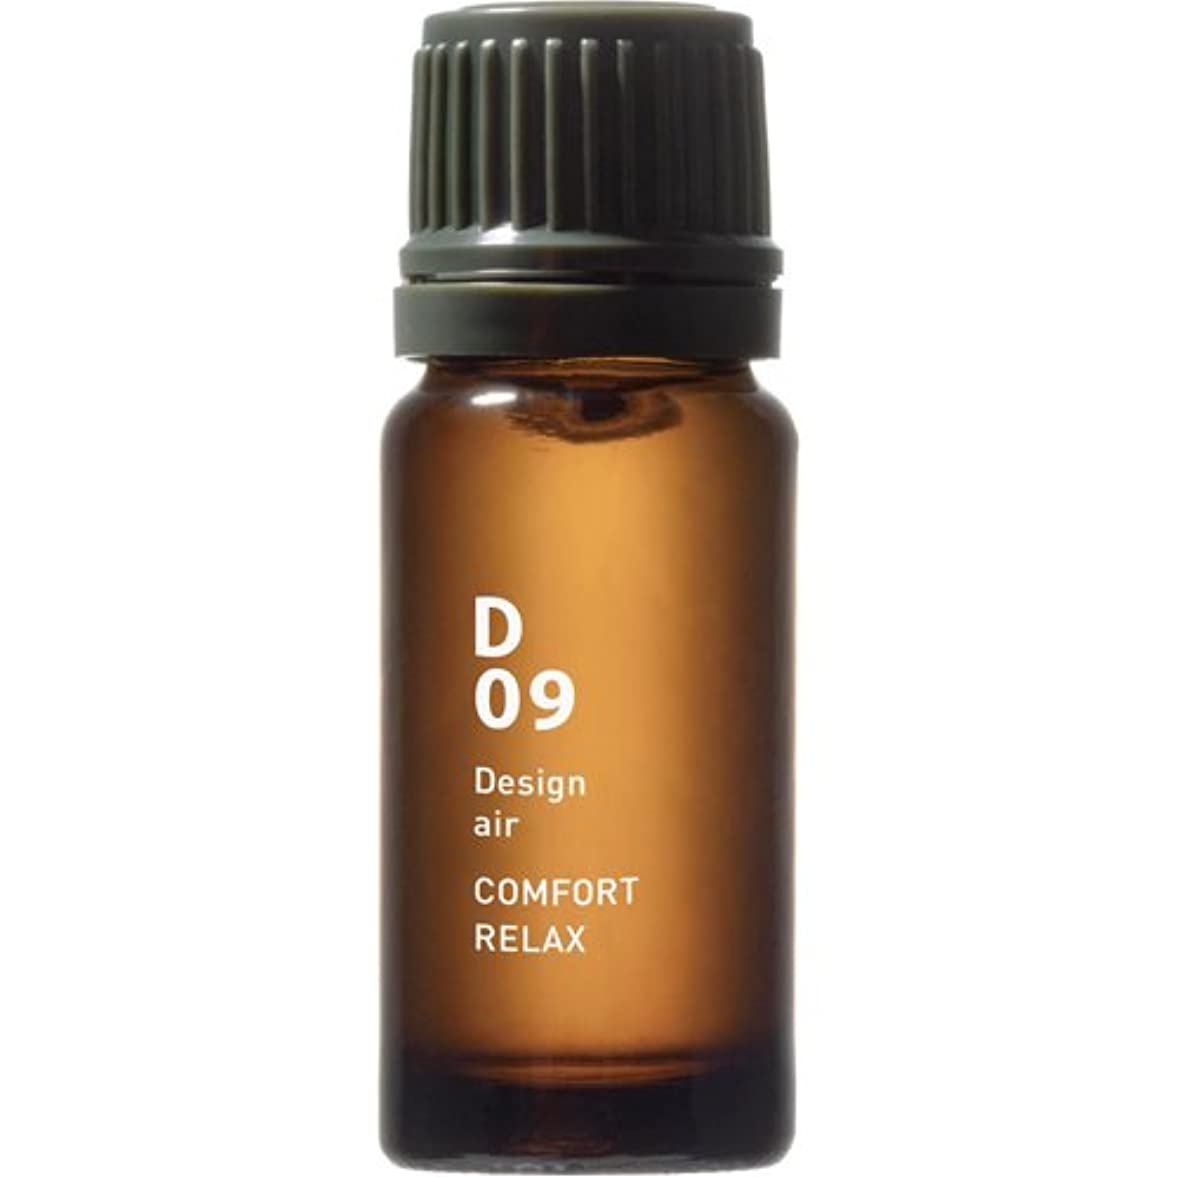 蒸し器一族ミキサーD09 COMFORT RELAX Design air 10ml